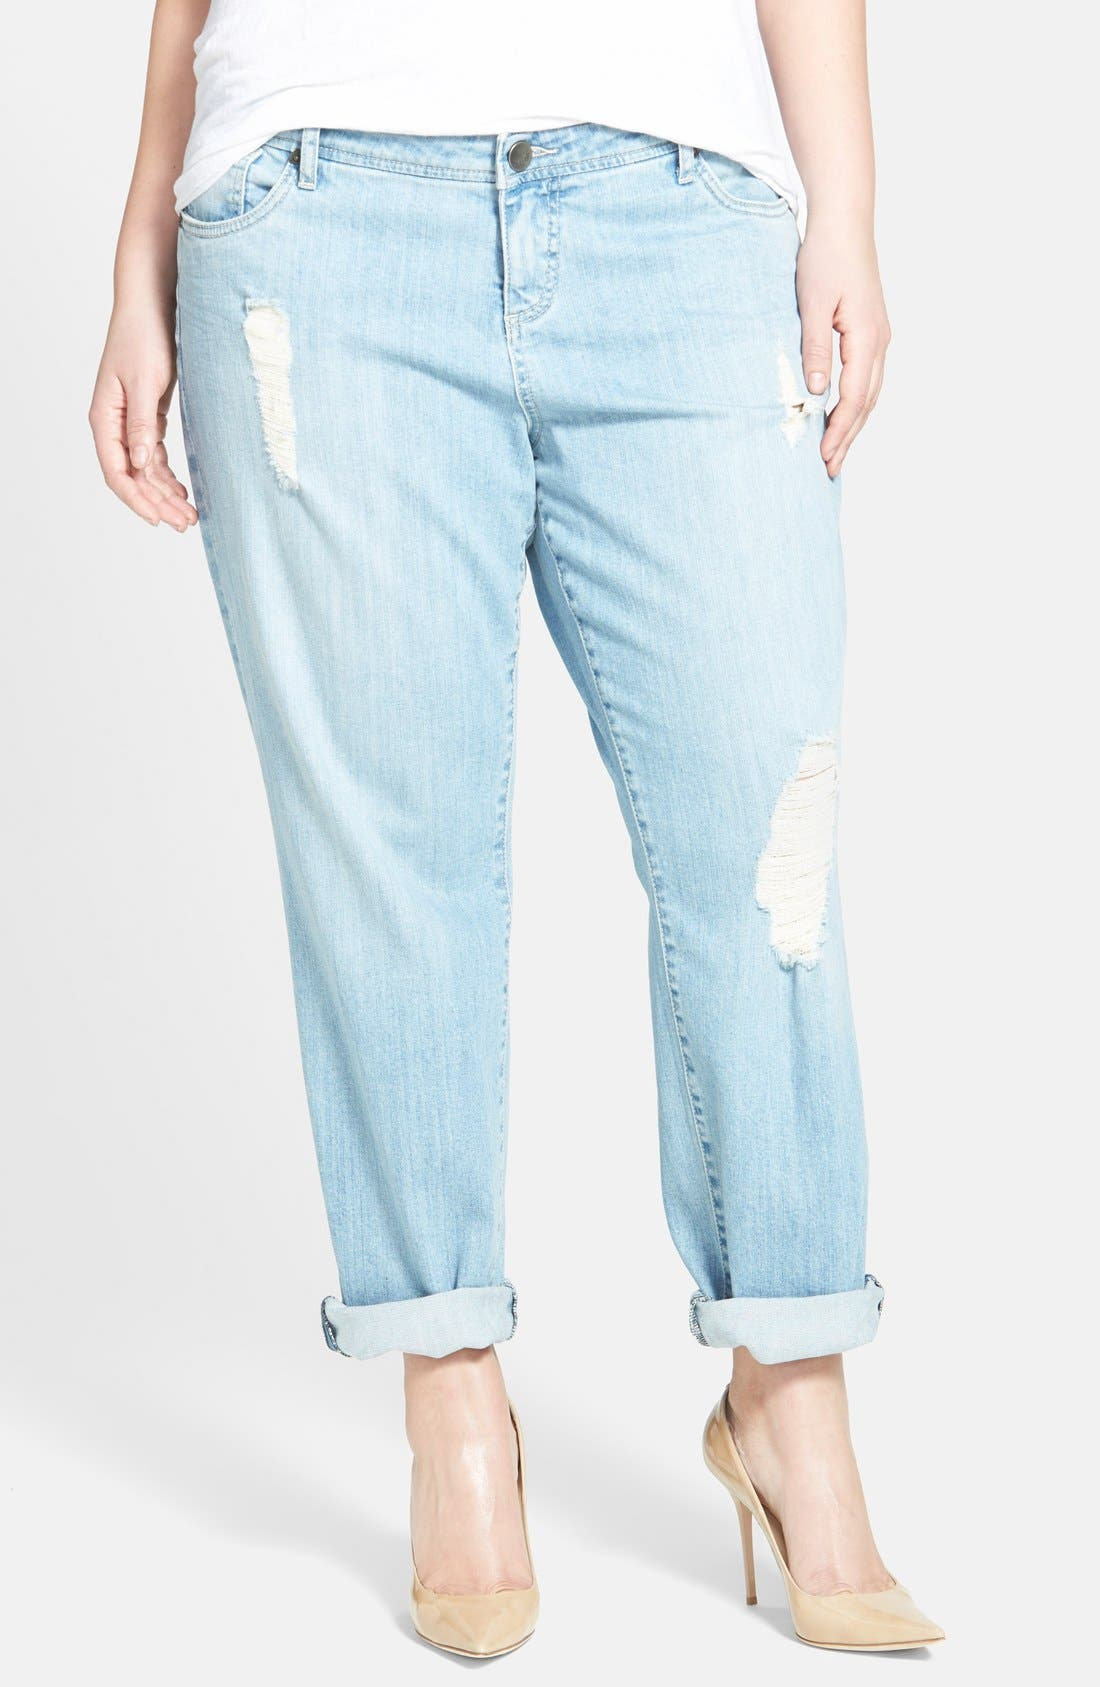 Alternate Image 1 Selected - KUT from the Kloth Distressed Boyfriend Jeans (Slick) (Plus Size)